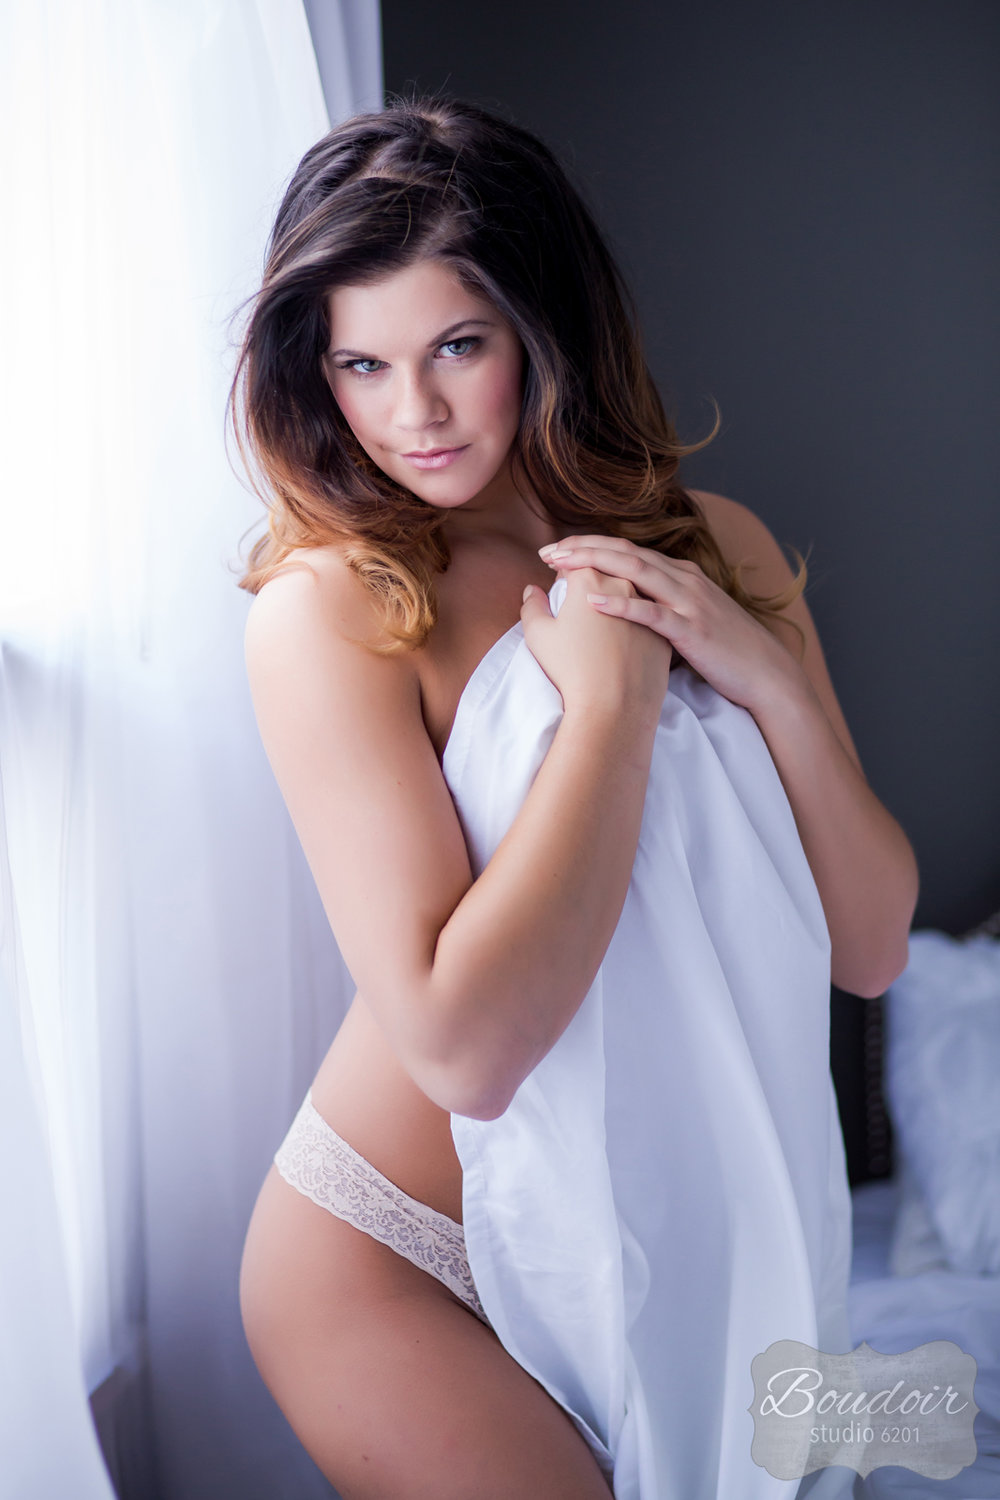 boudoir-studio-6201-tiffany-loveless-makeup-artistry008.jpg